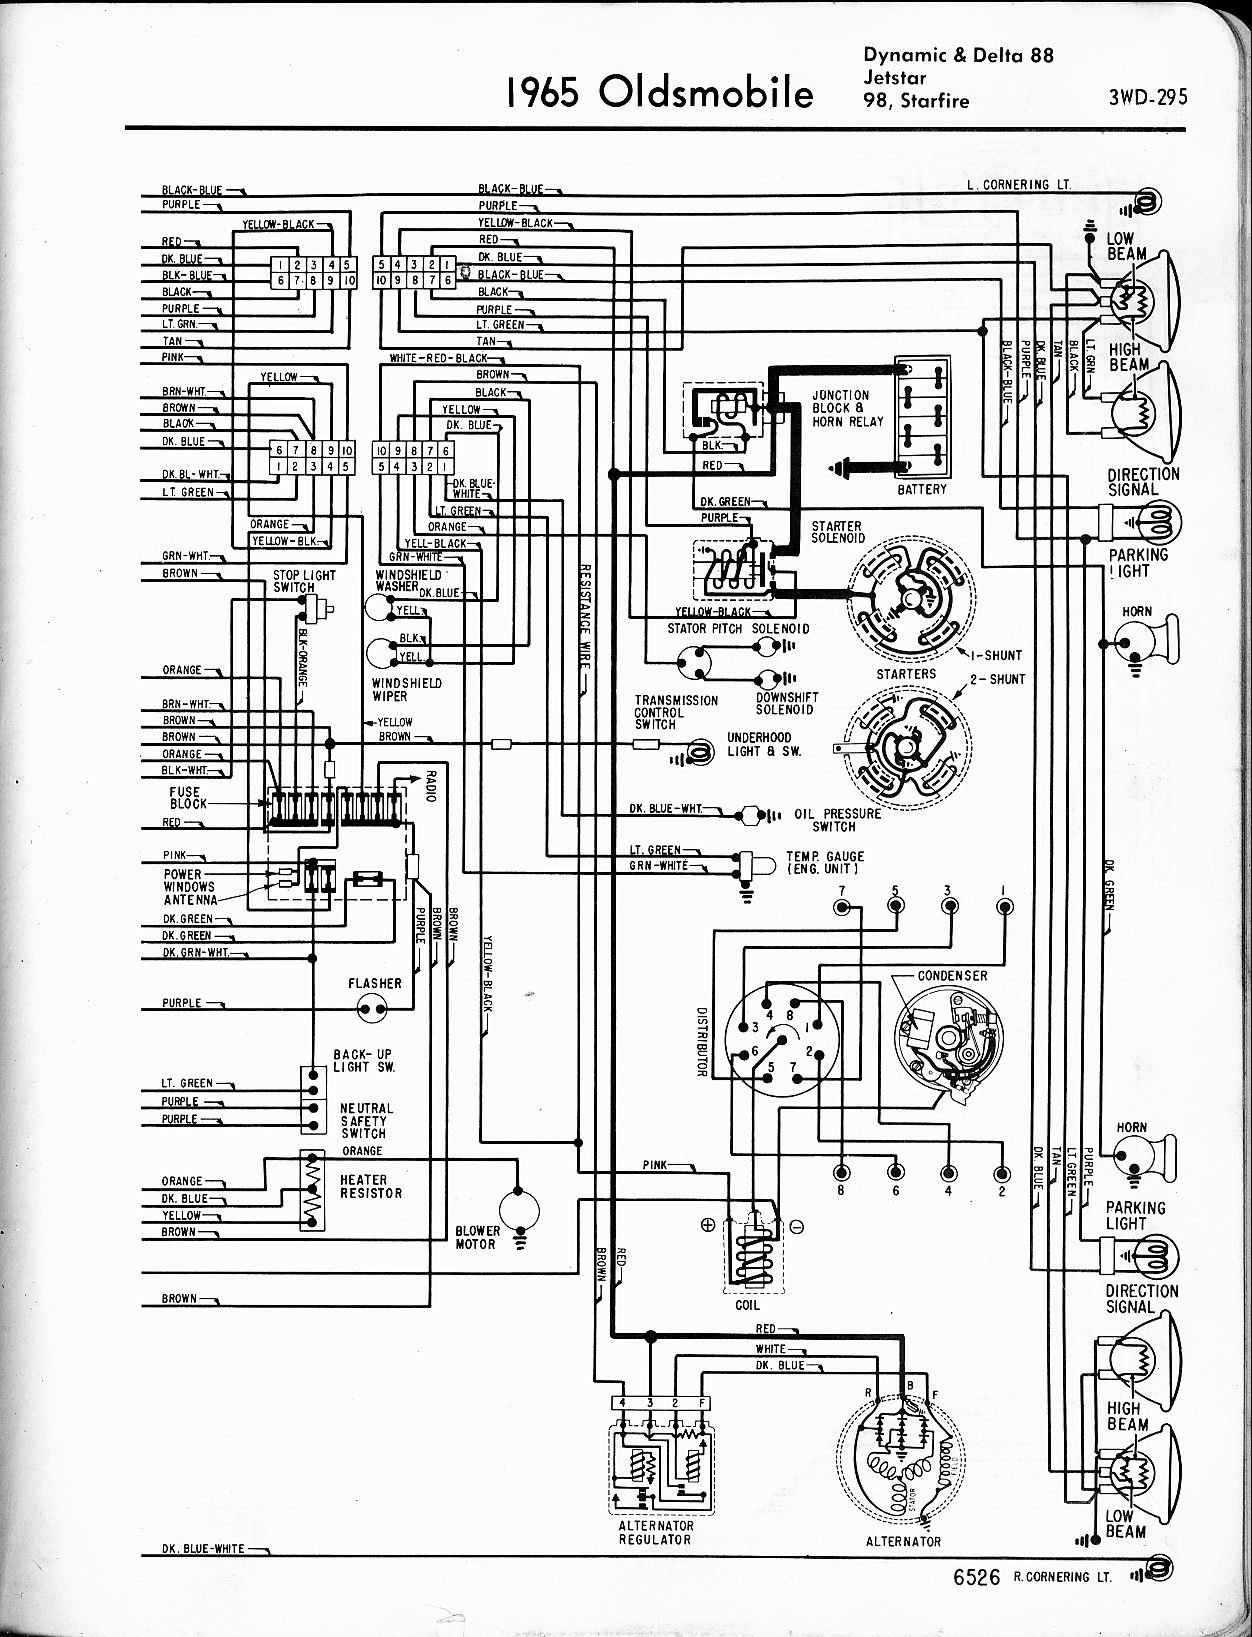 DIAGRAM] 1968 Oldsmobile Cutlass Wiring Diagram FULL Version HD Quality Wiring  Diagram - NODELABORATORY.EDF-RECRUTEMENT.FRedf-recrutement.fr